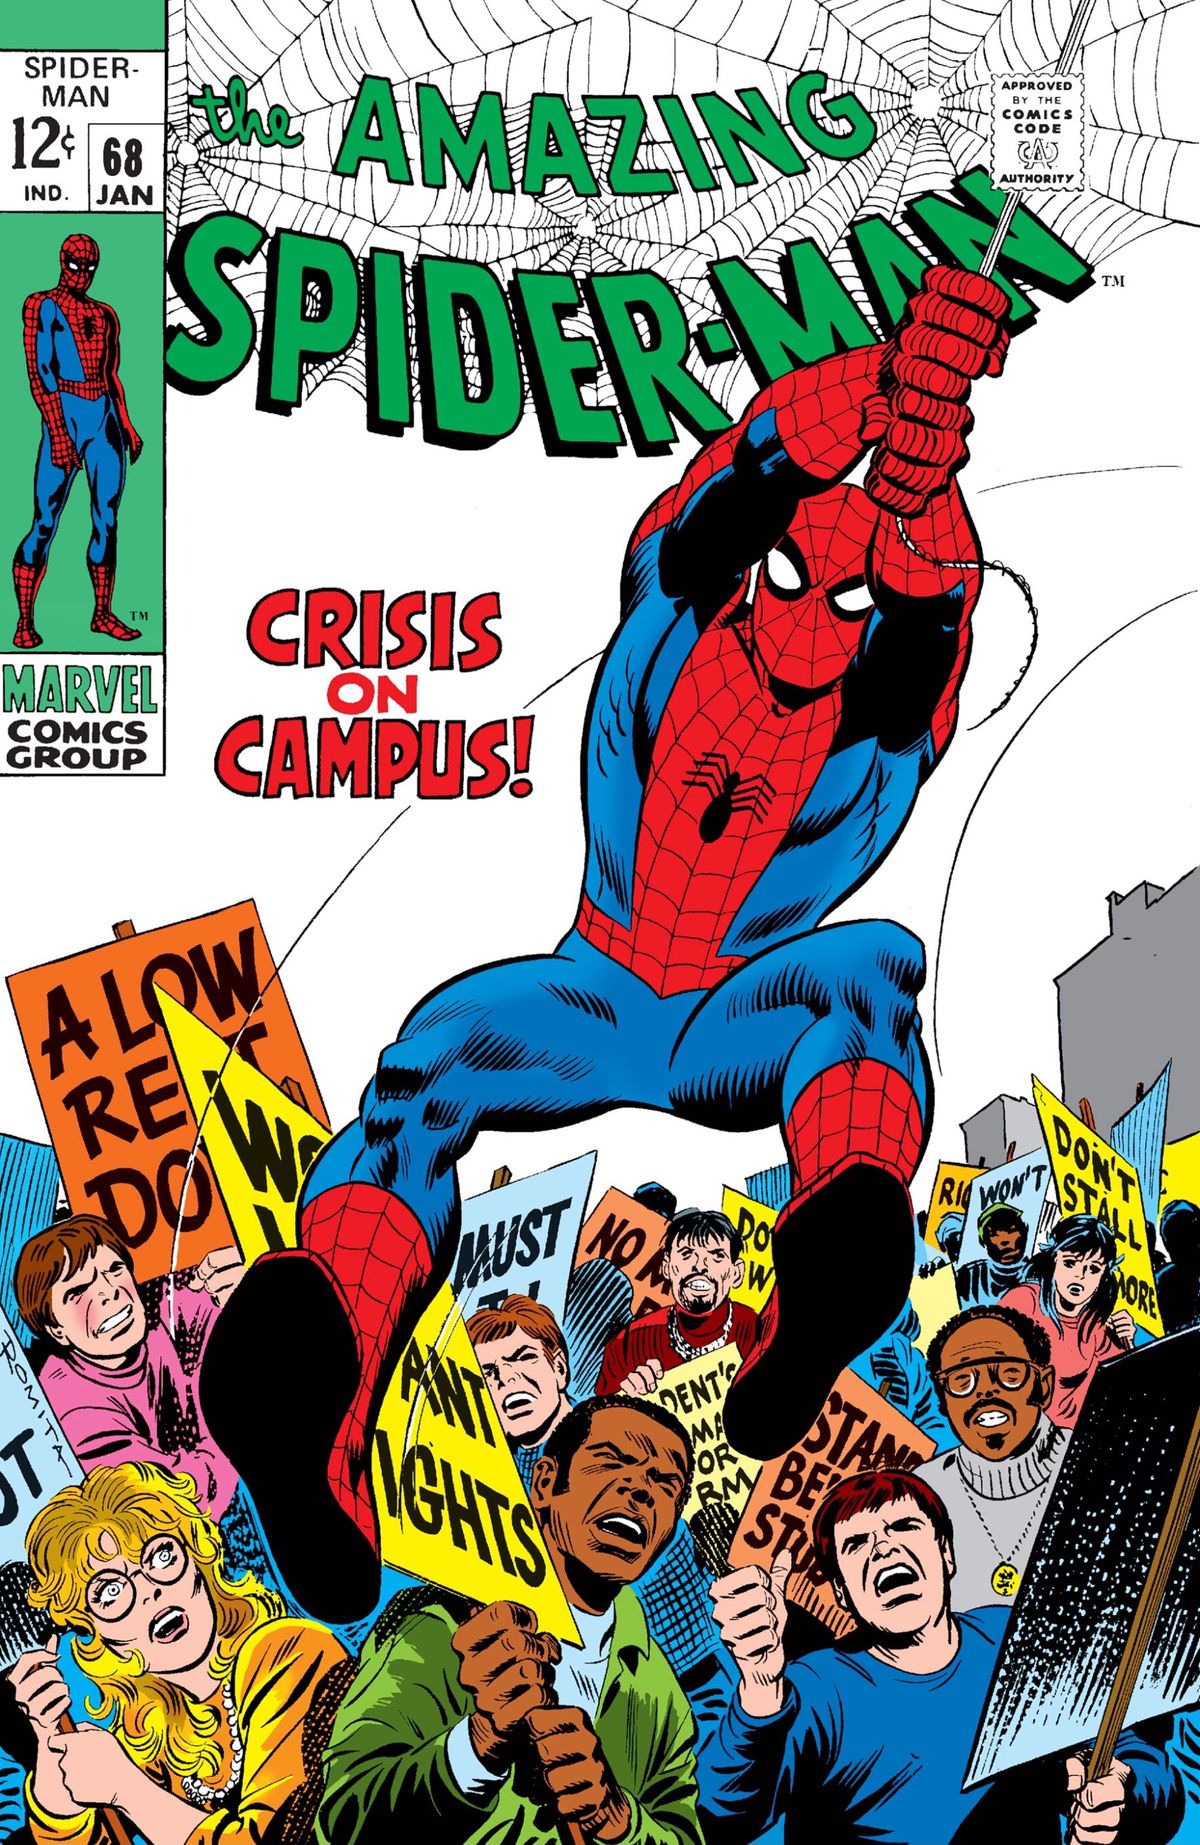 The cover of The Amazing Spider-Man #68, Marvel Comics (1968).